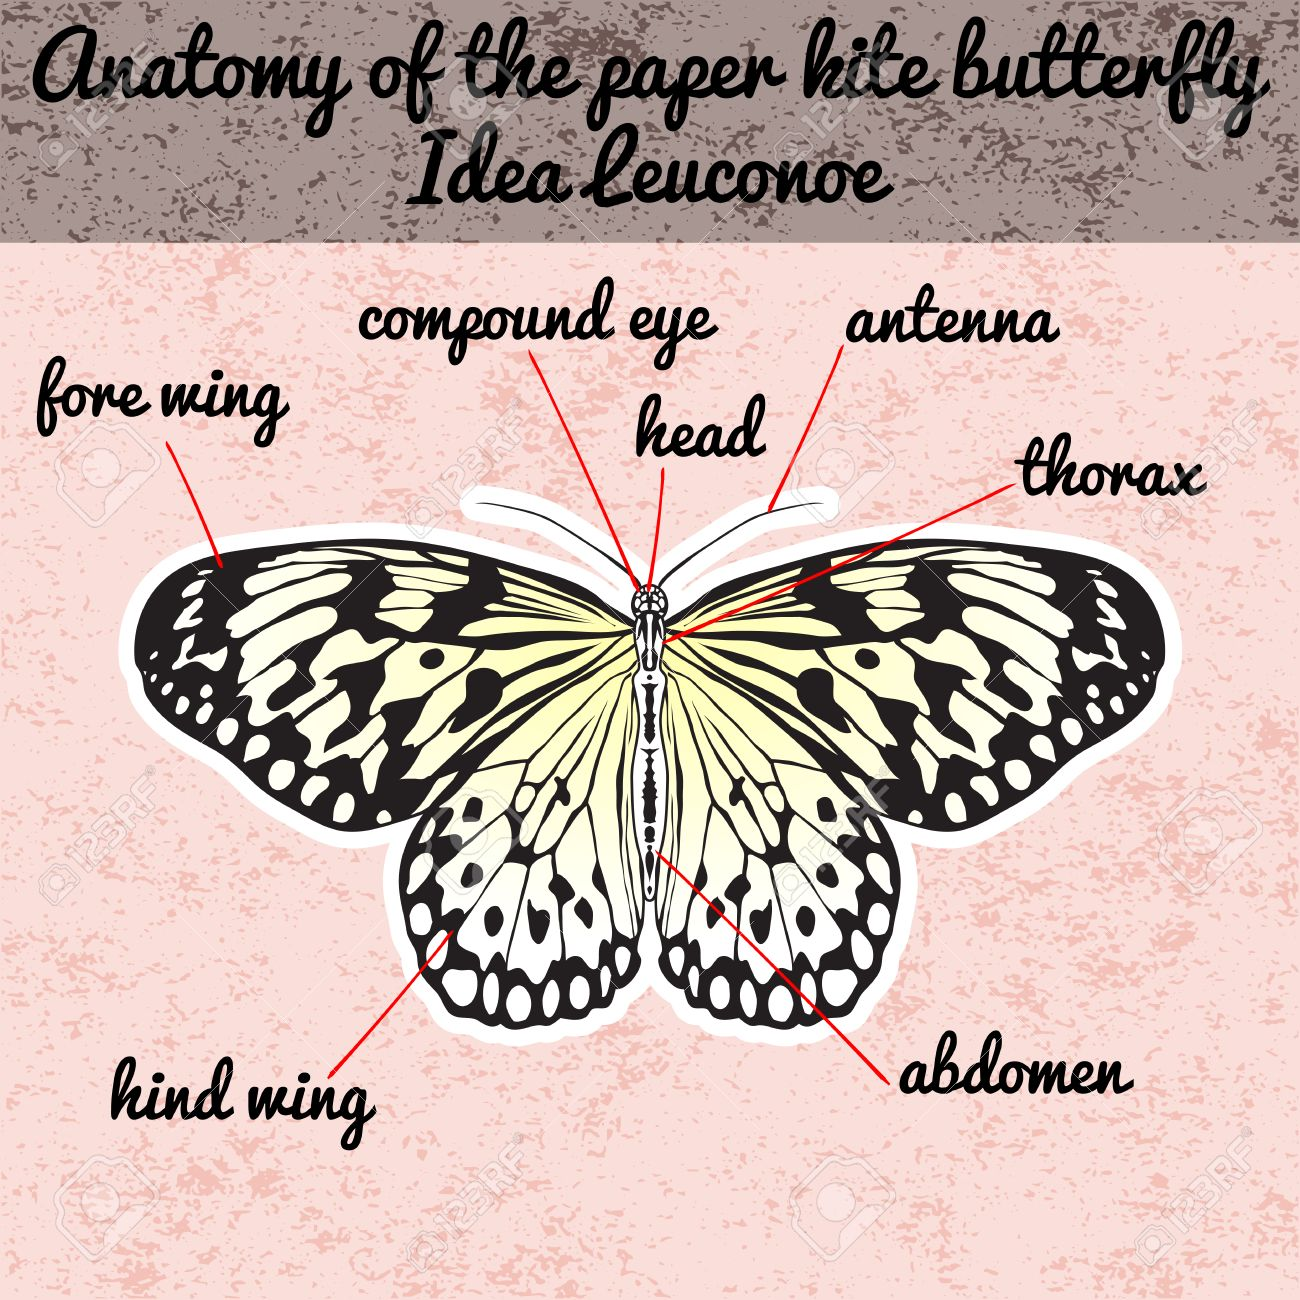 Insect Anatomy. Sticker Butterfly Idea Leuconoe. Rice Paper Kite ...